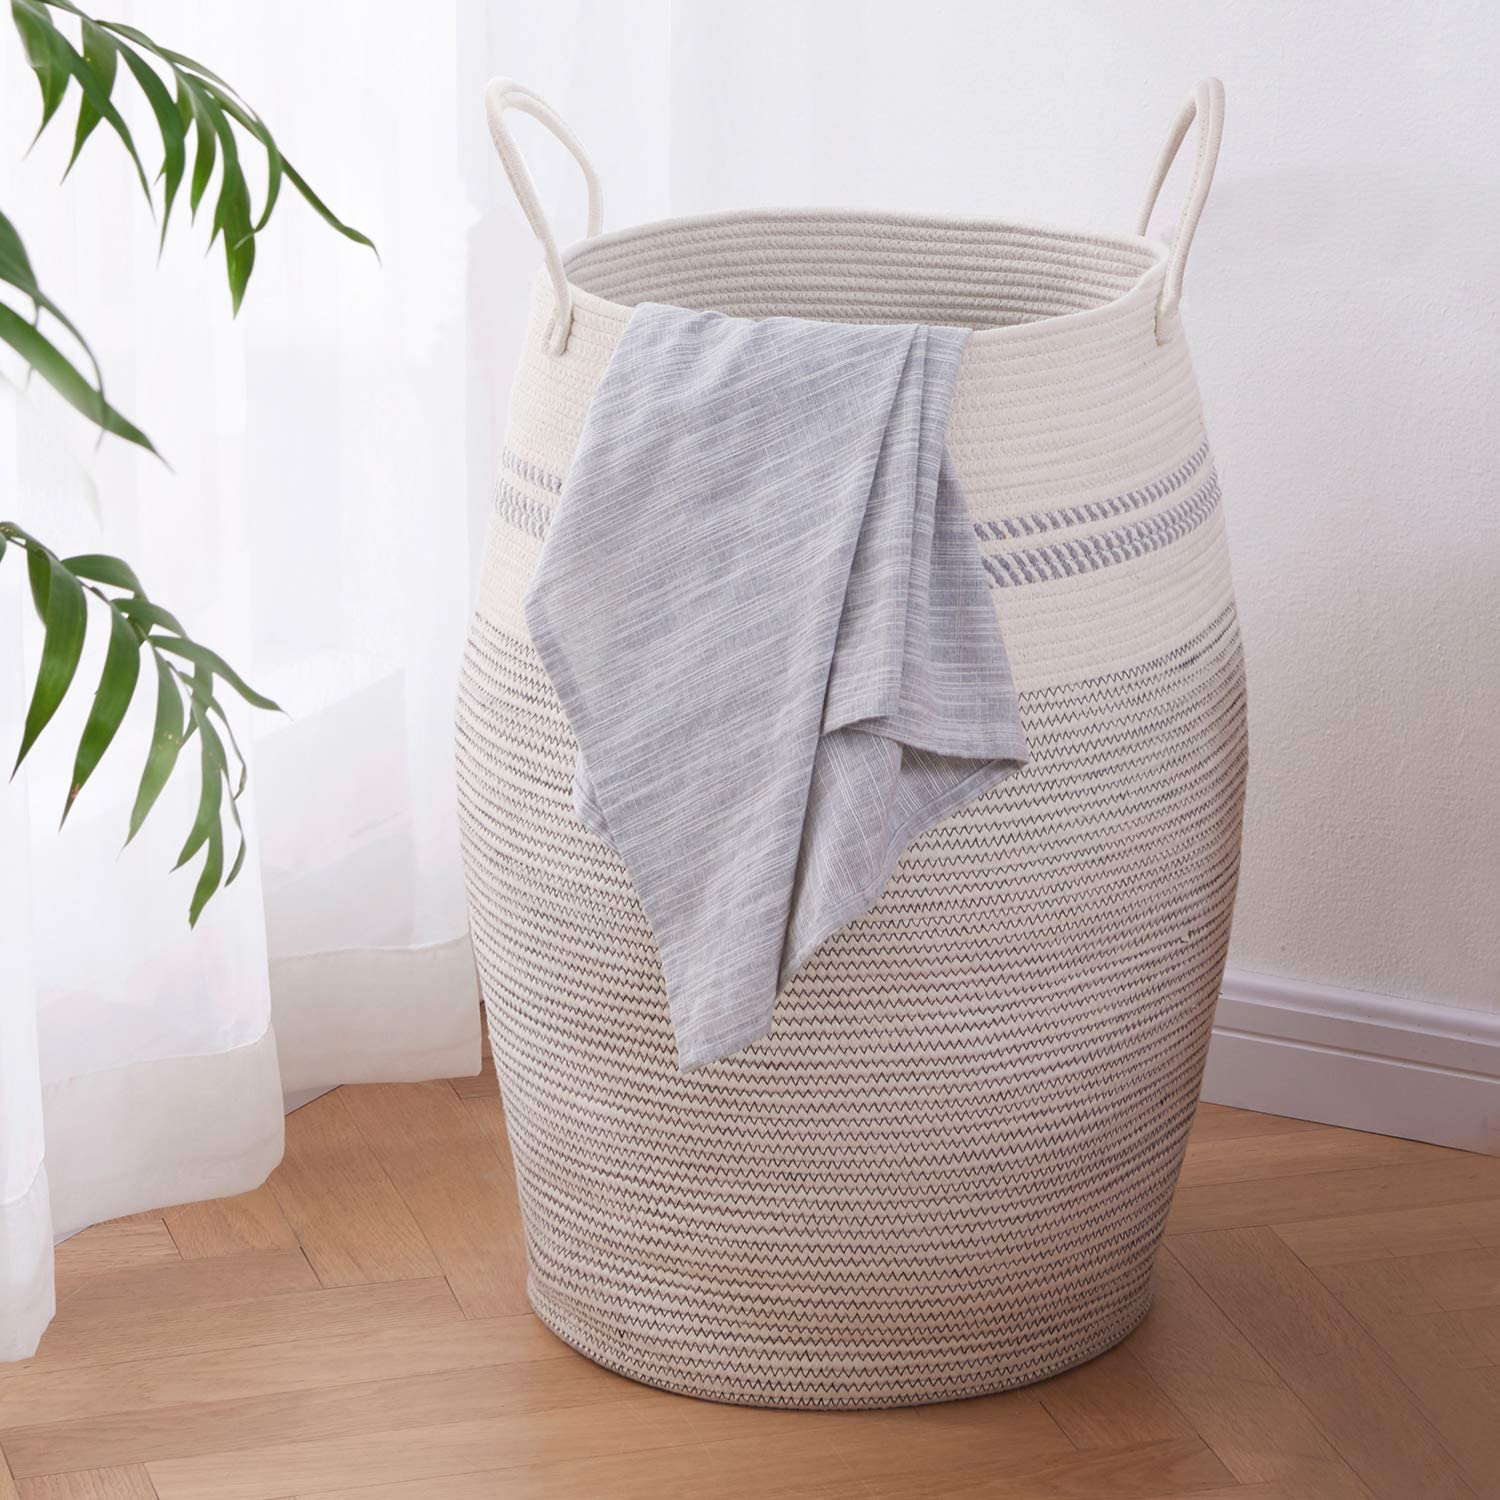 "OIAHOMY Laundry Hamper Woven Cotton Rope Large Clothes Hamper 25.6"" Height Tall Laundry Basket with Extended Cotton Handles for Storage Clothes Toys in Bedroom, Bathroom, Foldable (Light Grey)"